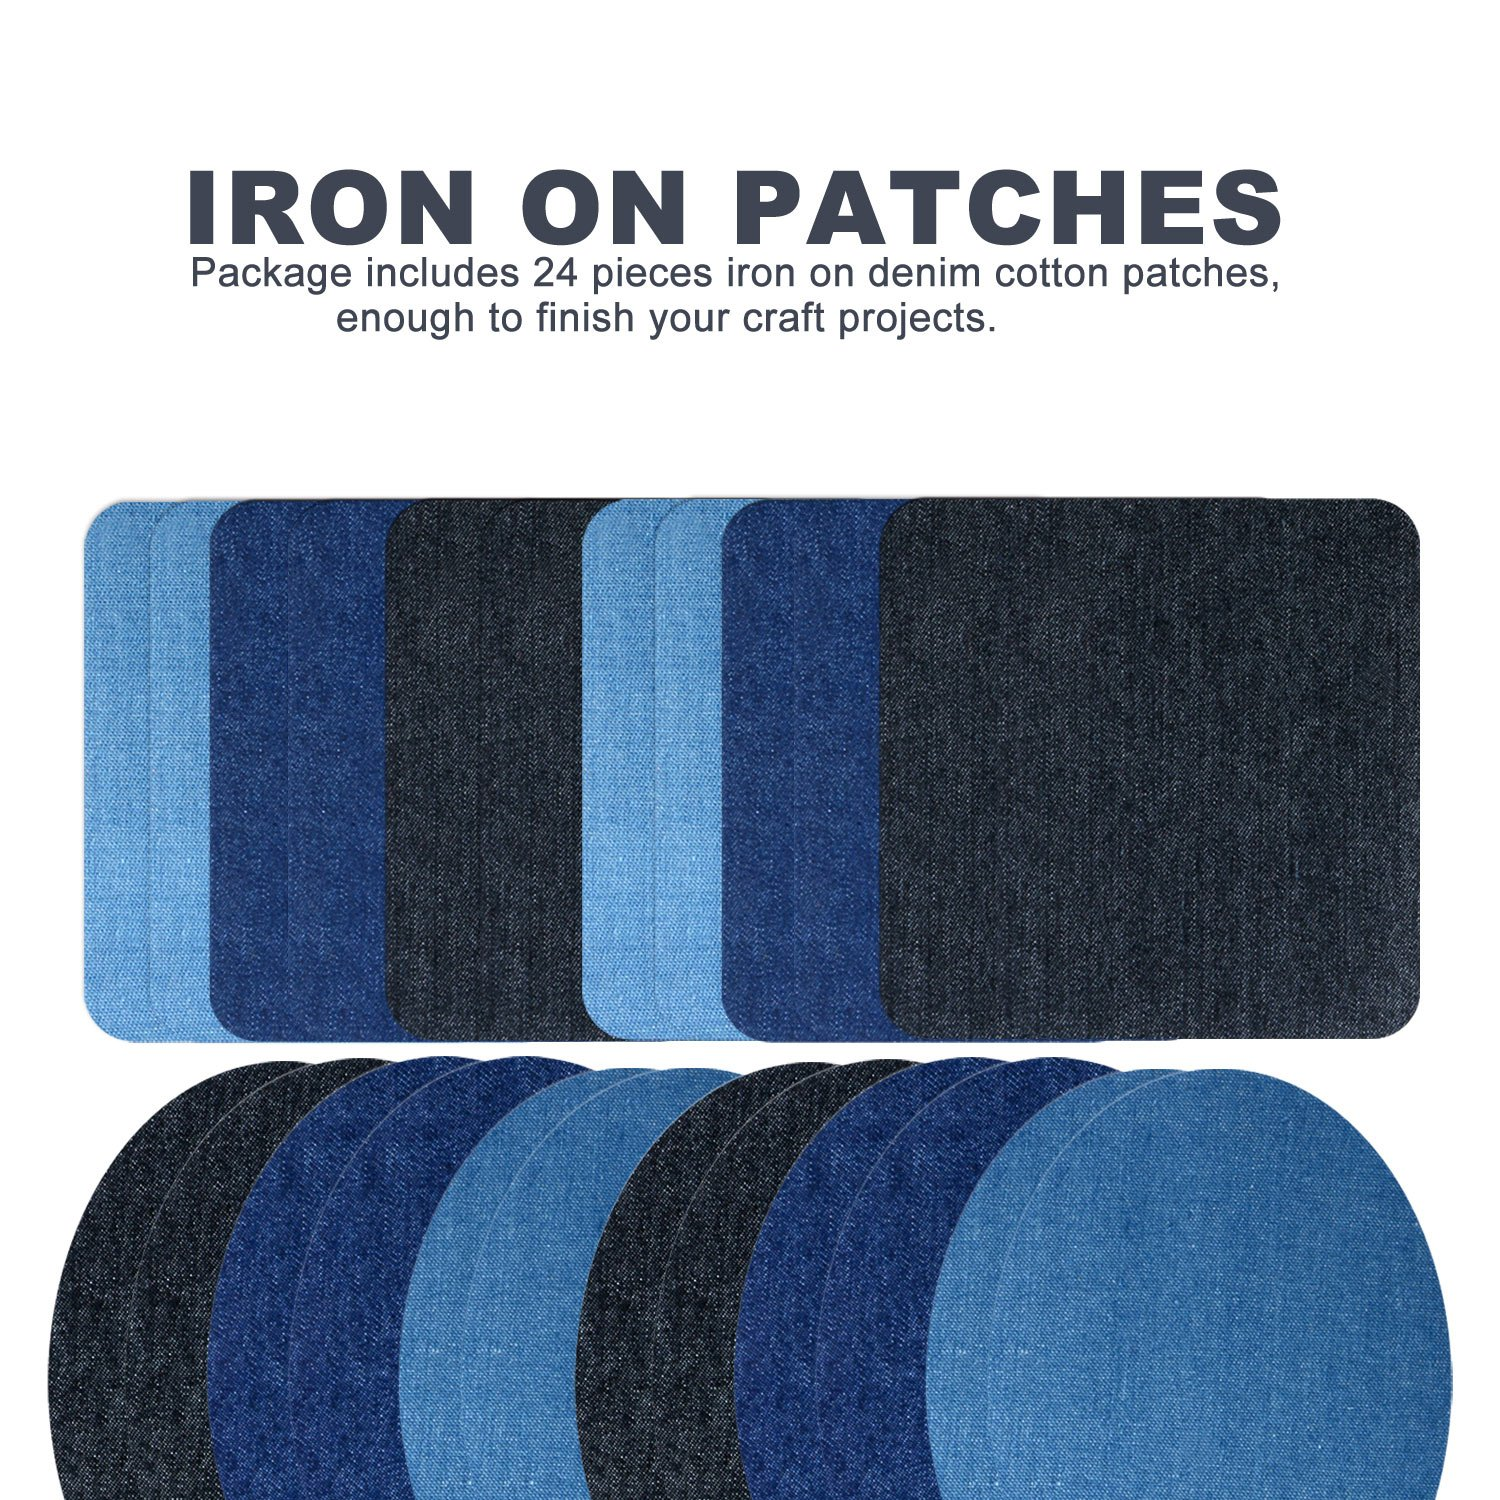 Iron On Patches, 24 Pieces Iron On Denim Cotton Patches Iron Repair Kit, 3 Sizes 3 Colors